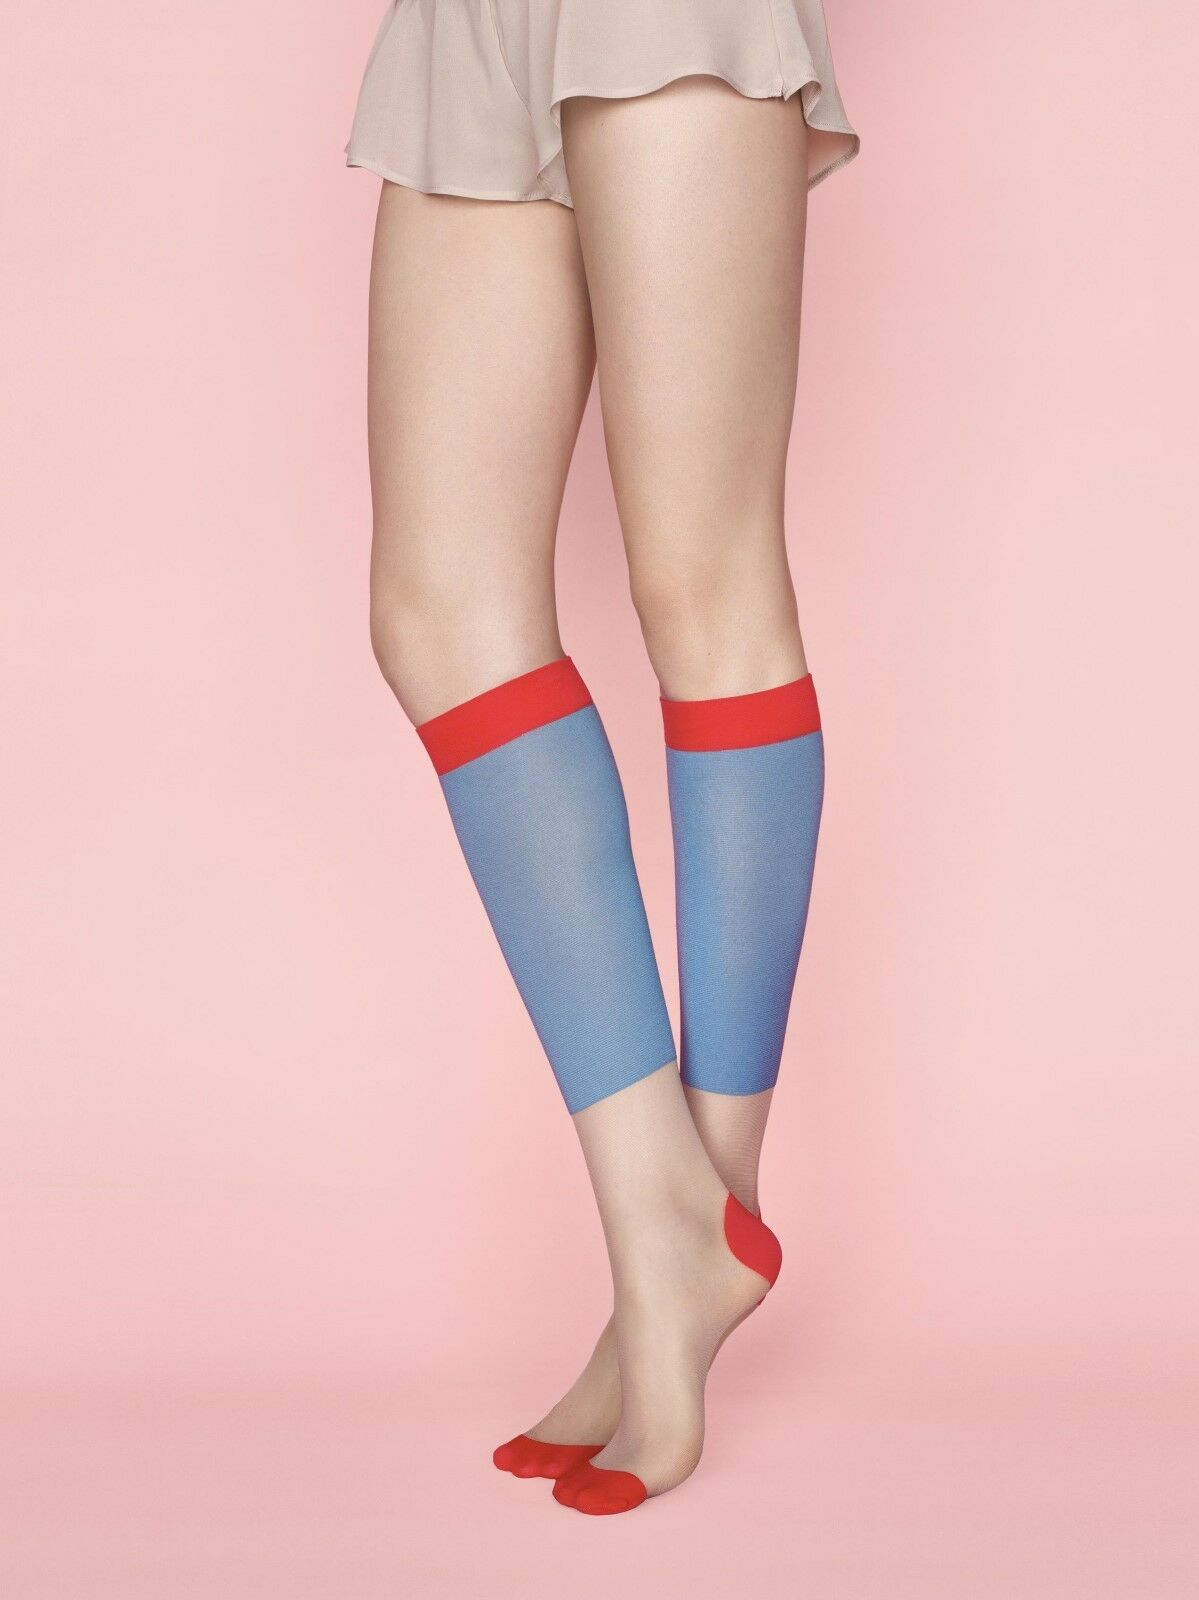 5f9765b99f Fiore Golden Line Game 1 20 Denier Patterned Knee Highs Hosiery FREE  SHIPPING фото